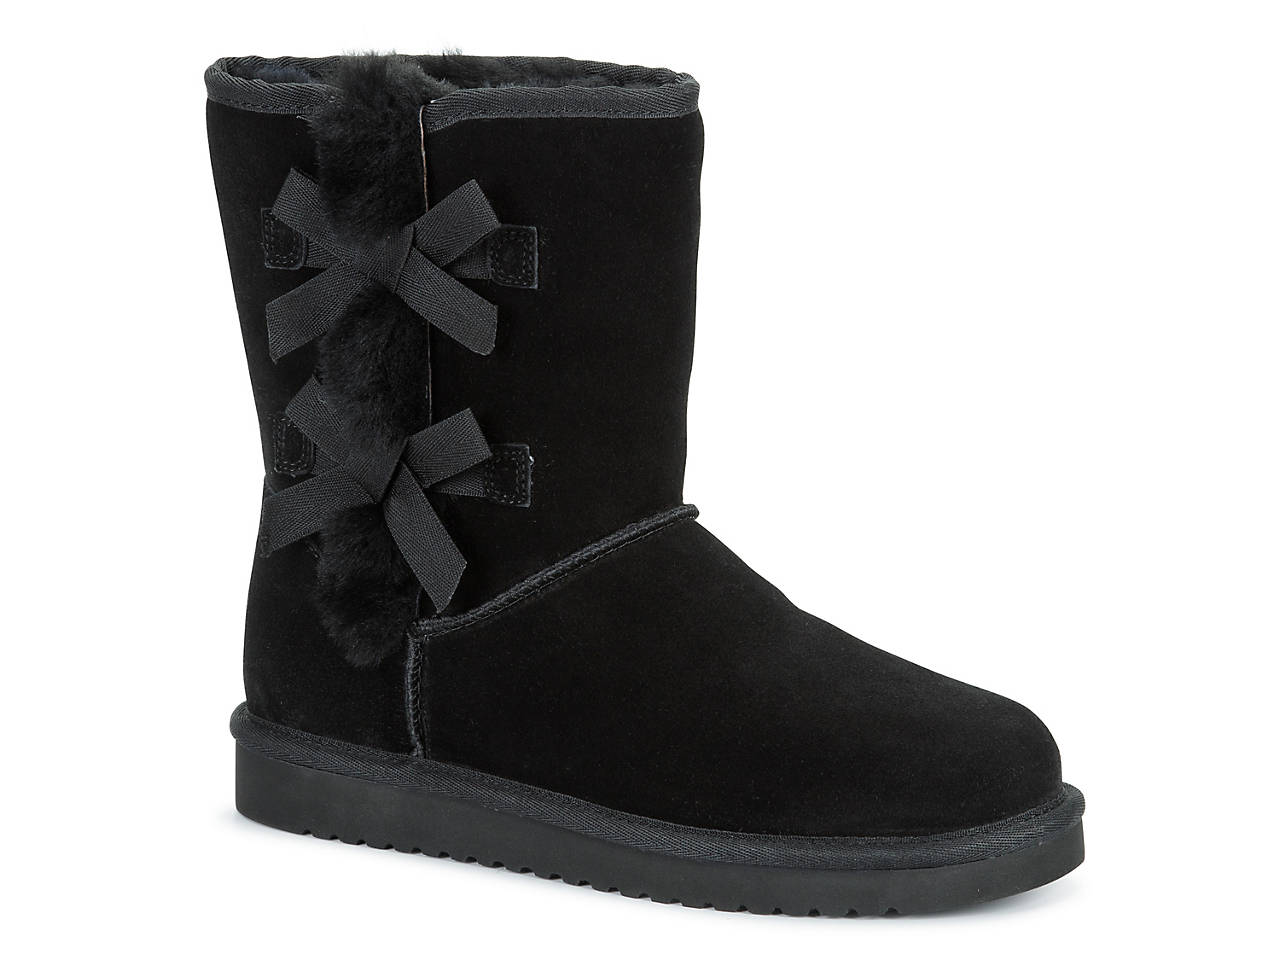 f1f434dc842a Koolaburra by UGG Victoria Short Bootie Women s Shoes